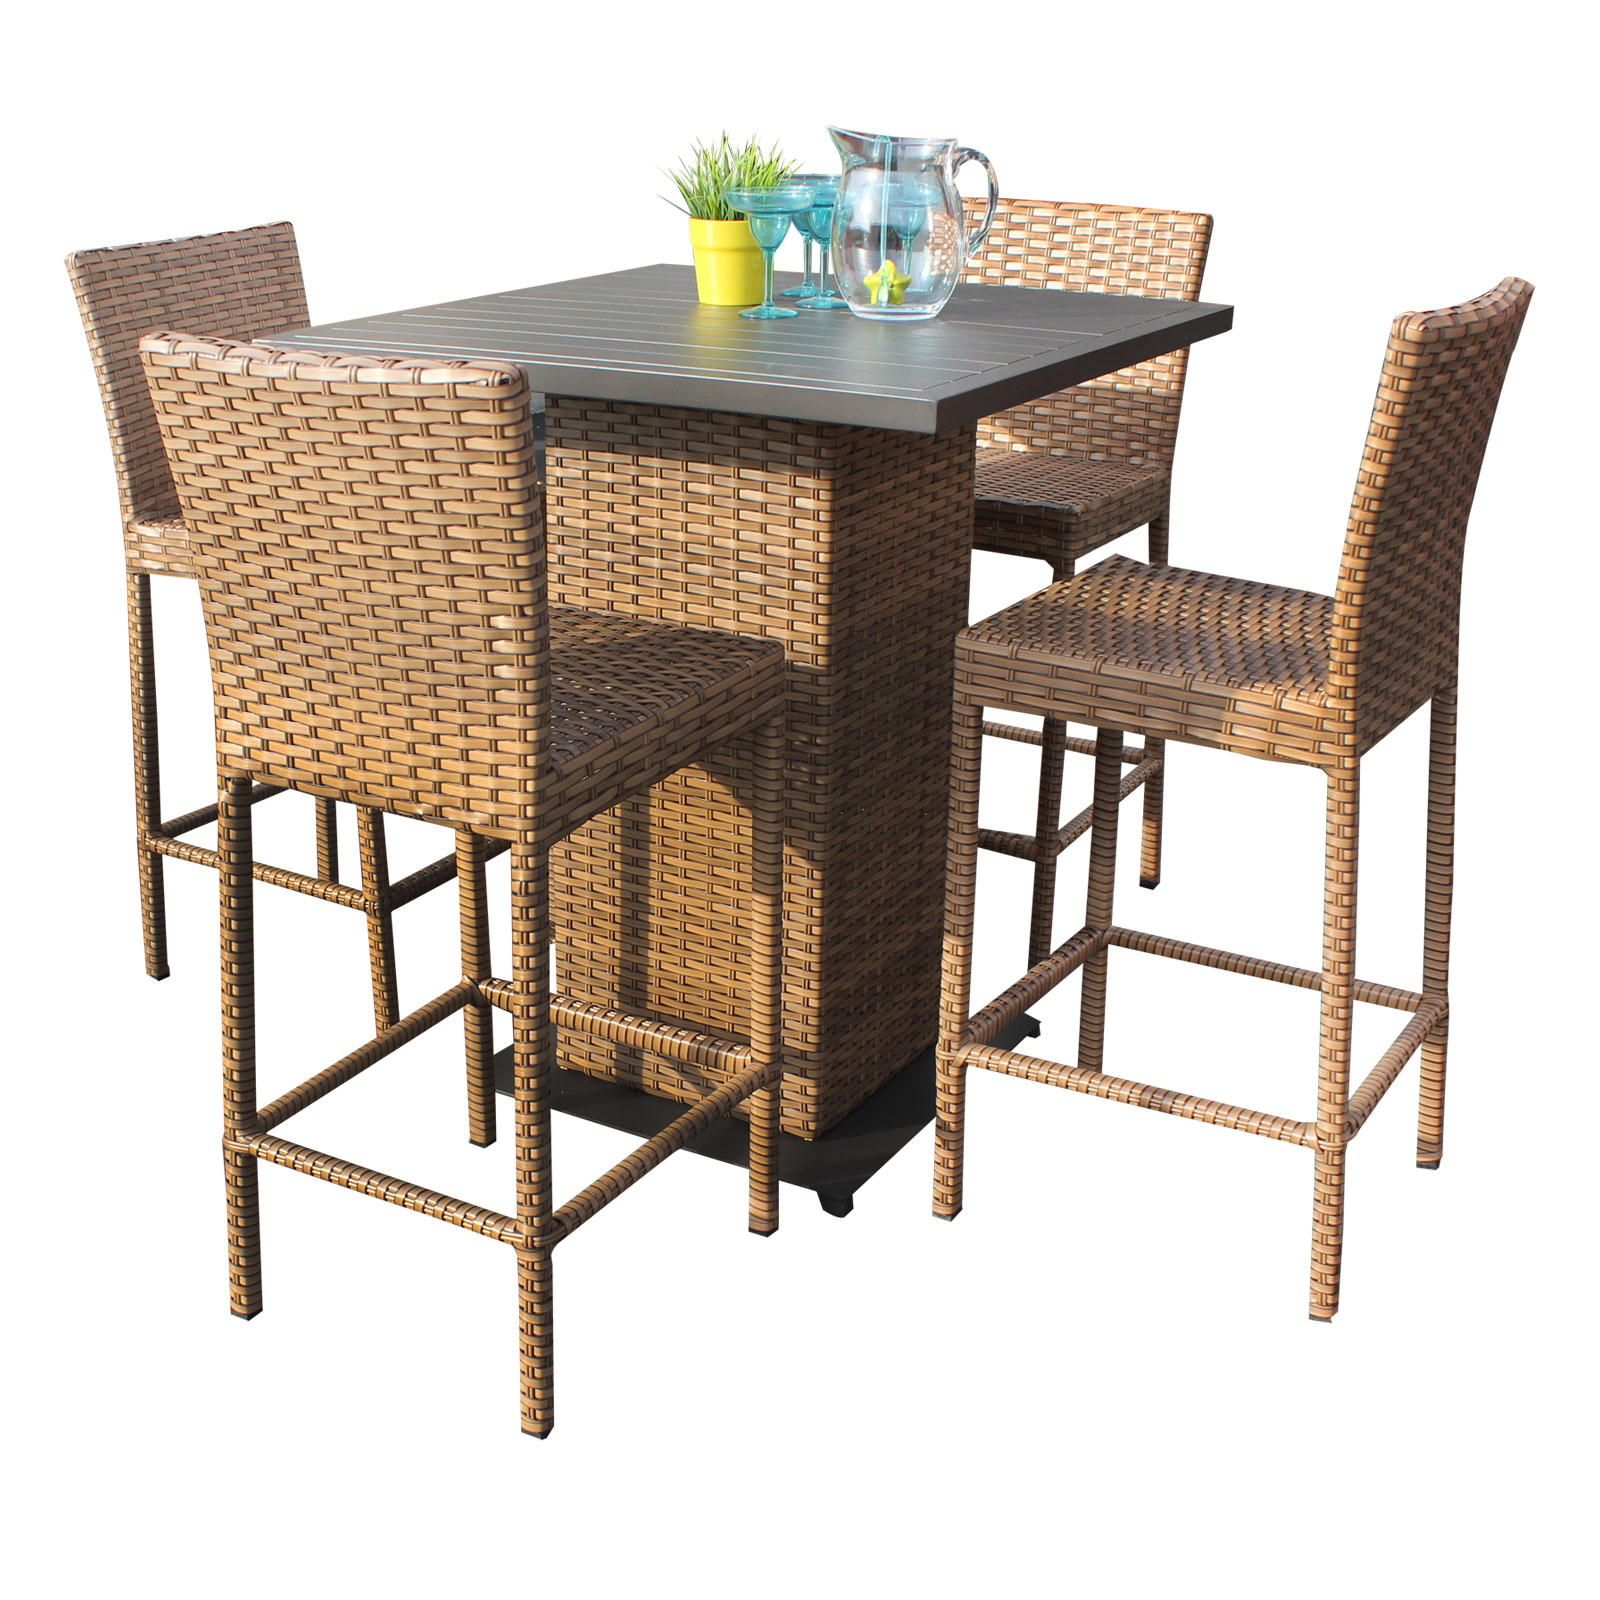 Gentil Tuscan Pub Table Set With Barstools 5 Piece Outdoor Wicker Patio Furniture